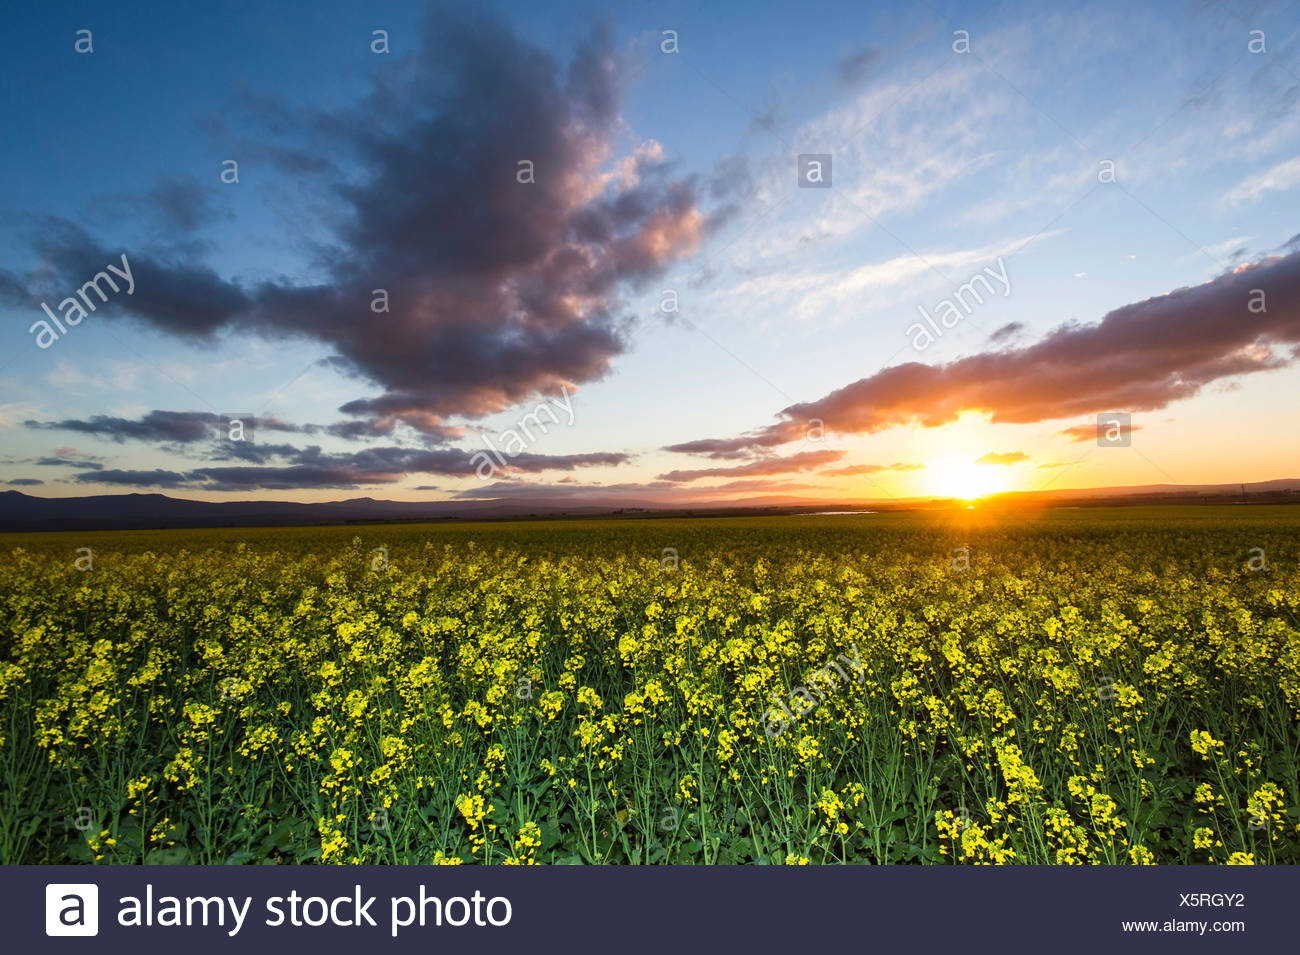 Surrounded By Canoloa Feilds Quotes: Canola Plant Stock Photos & Canola Plant Stock Images